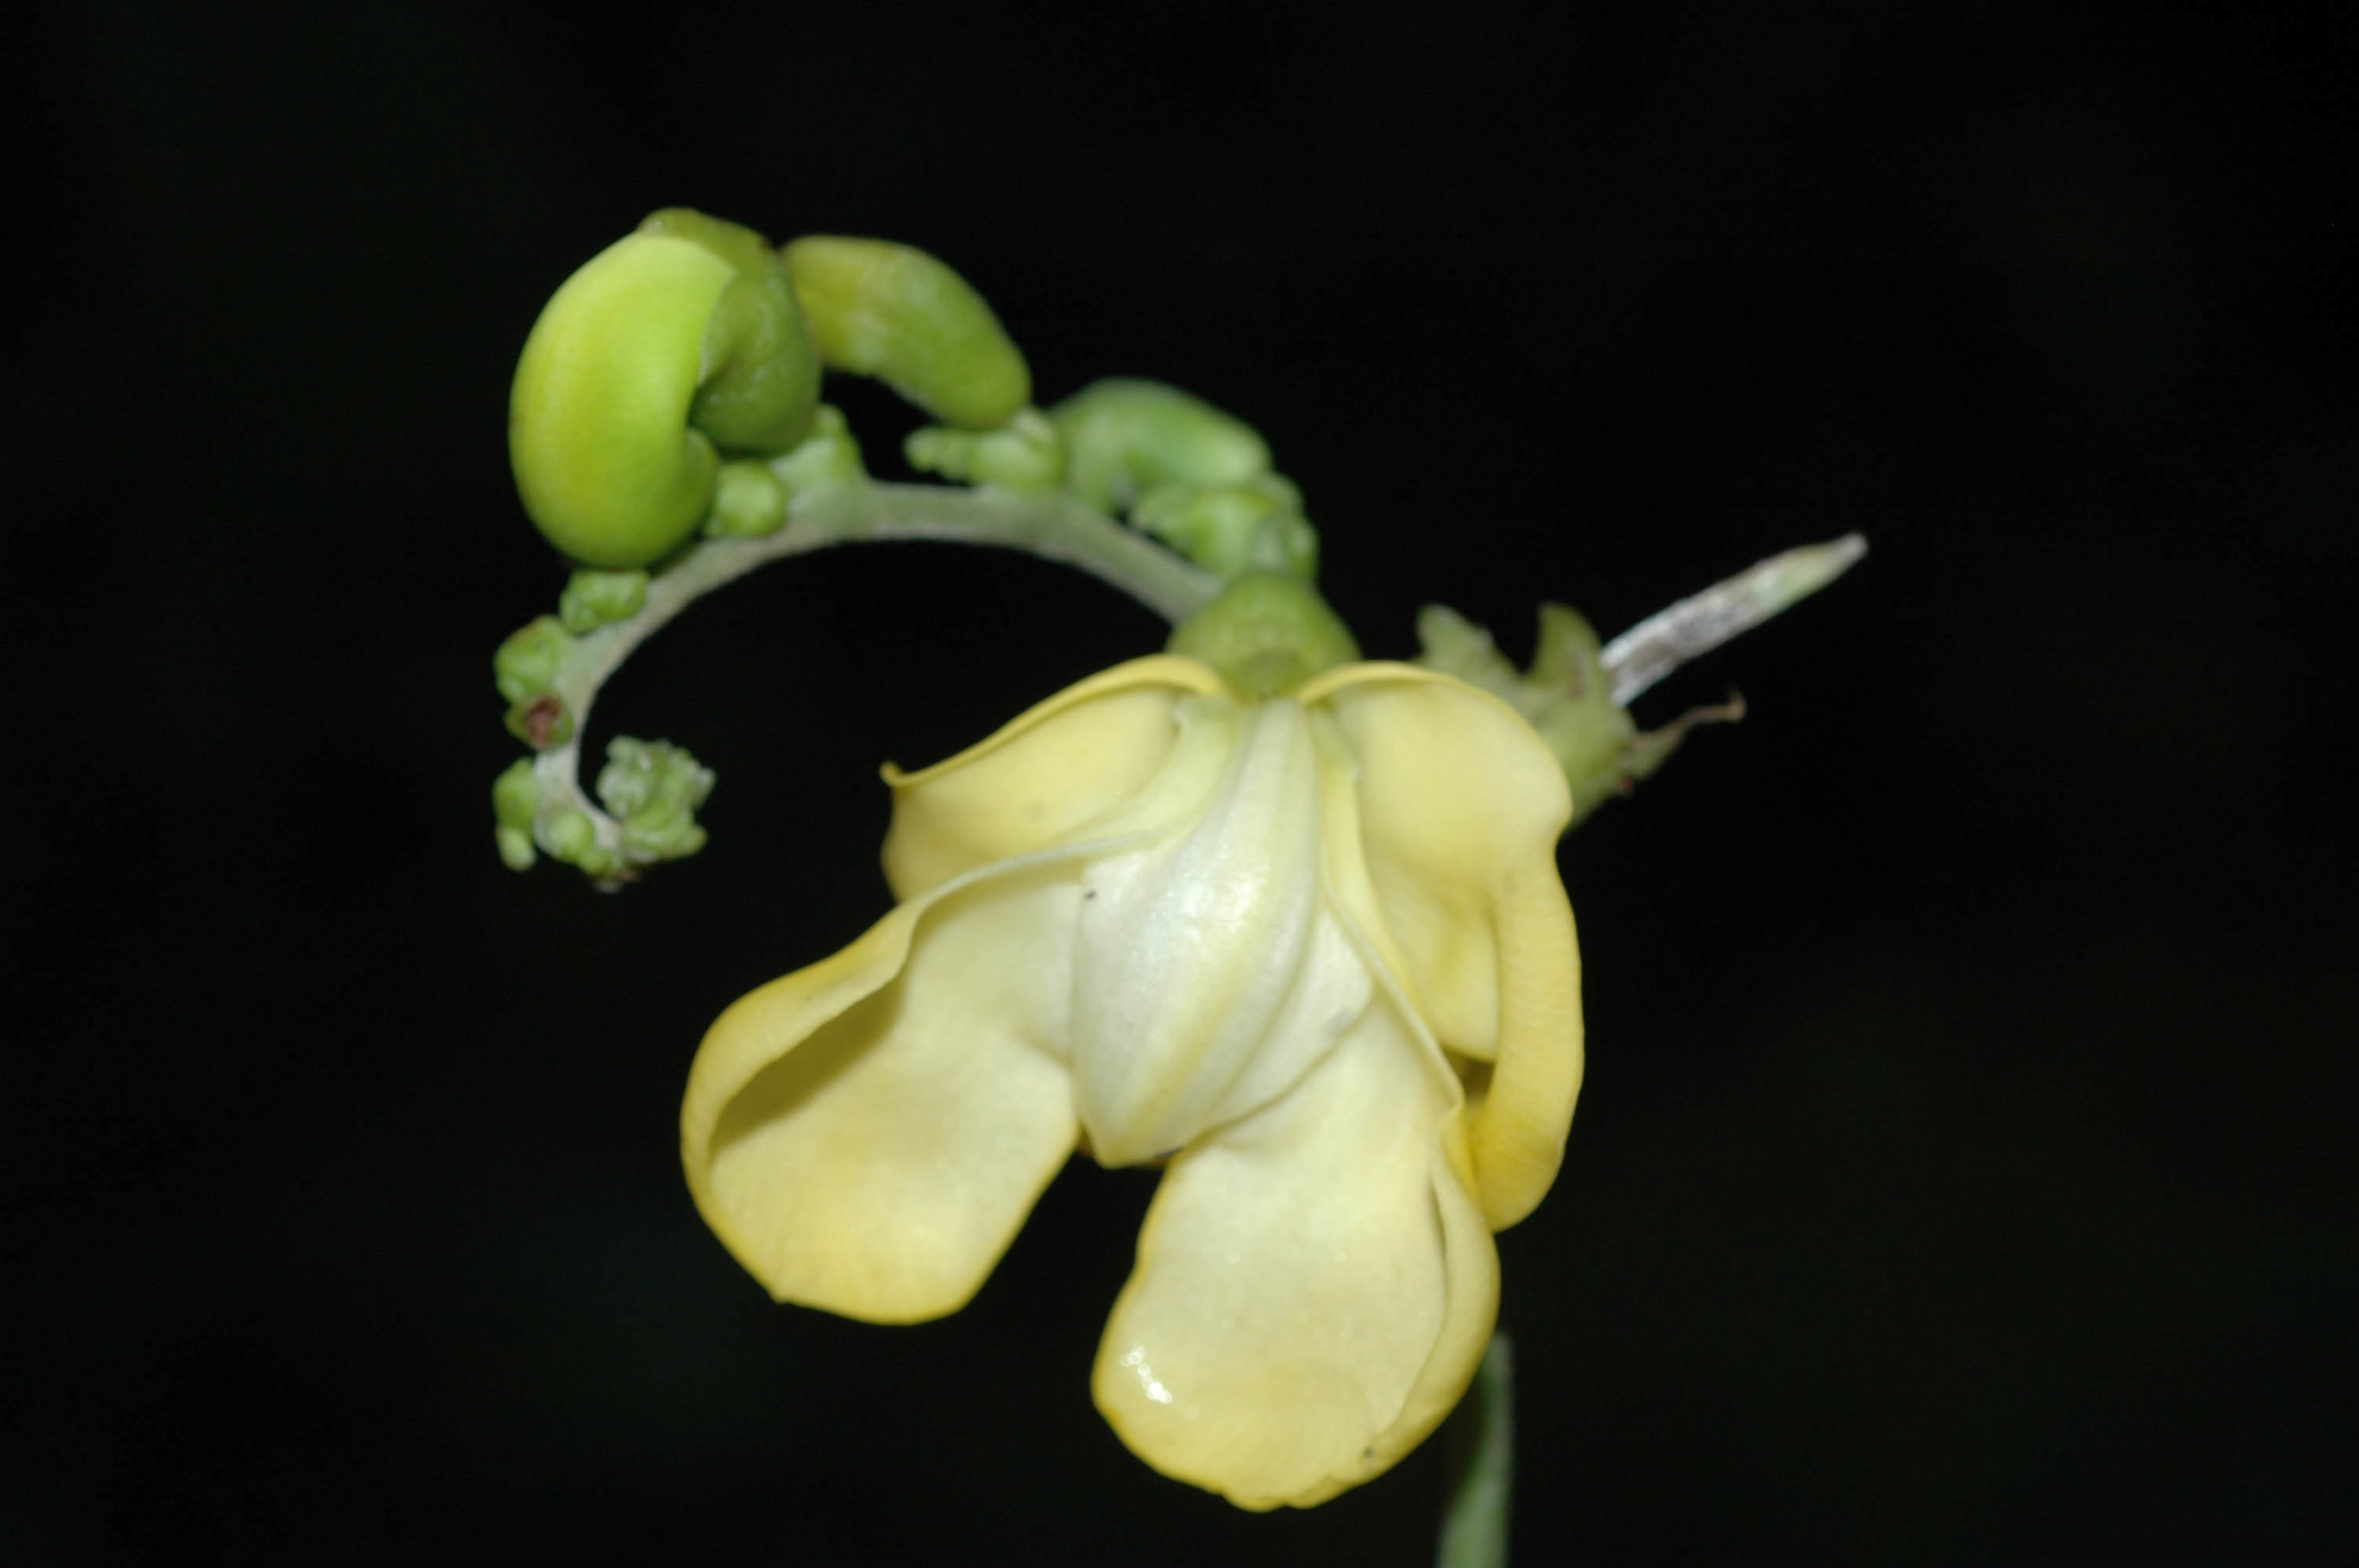 Image of hairypod cowpea